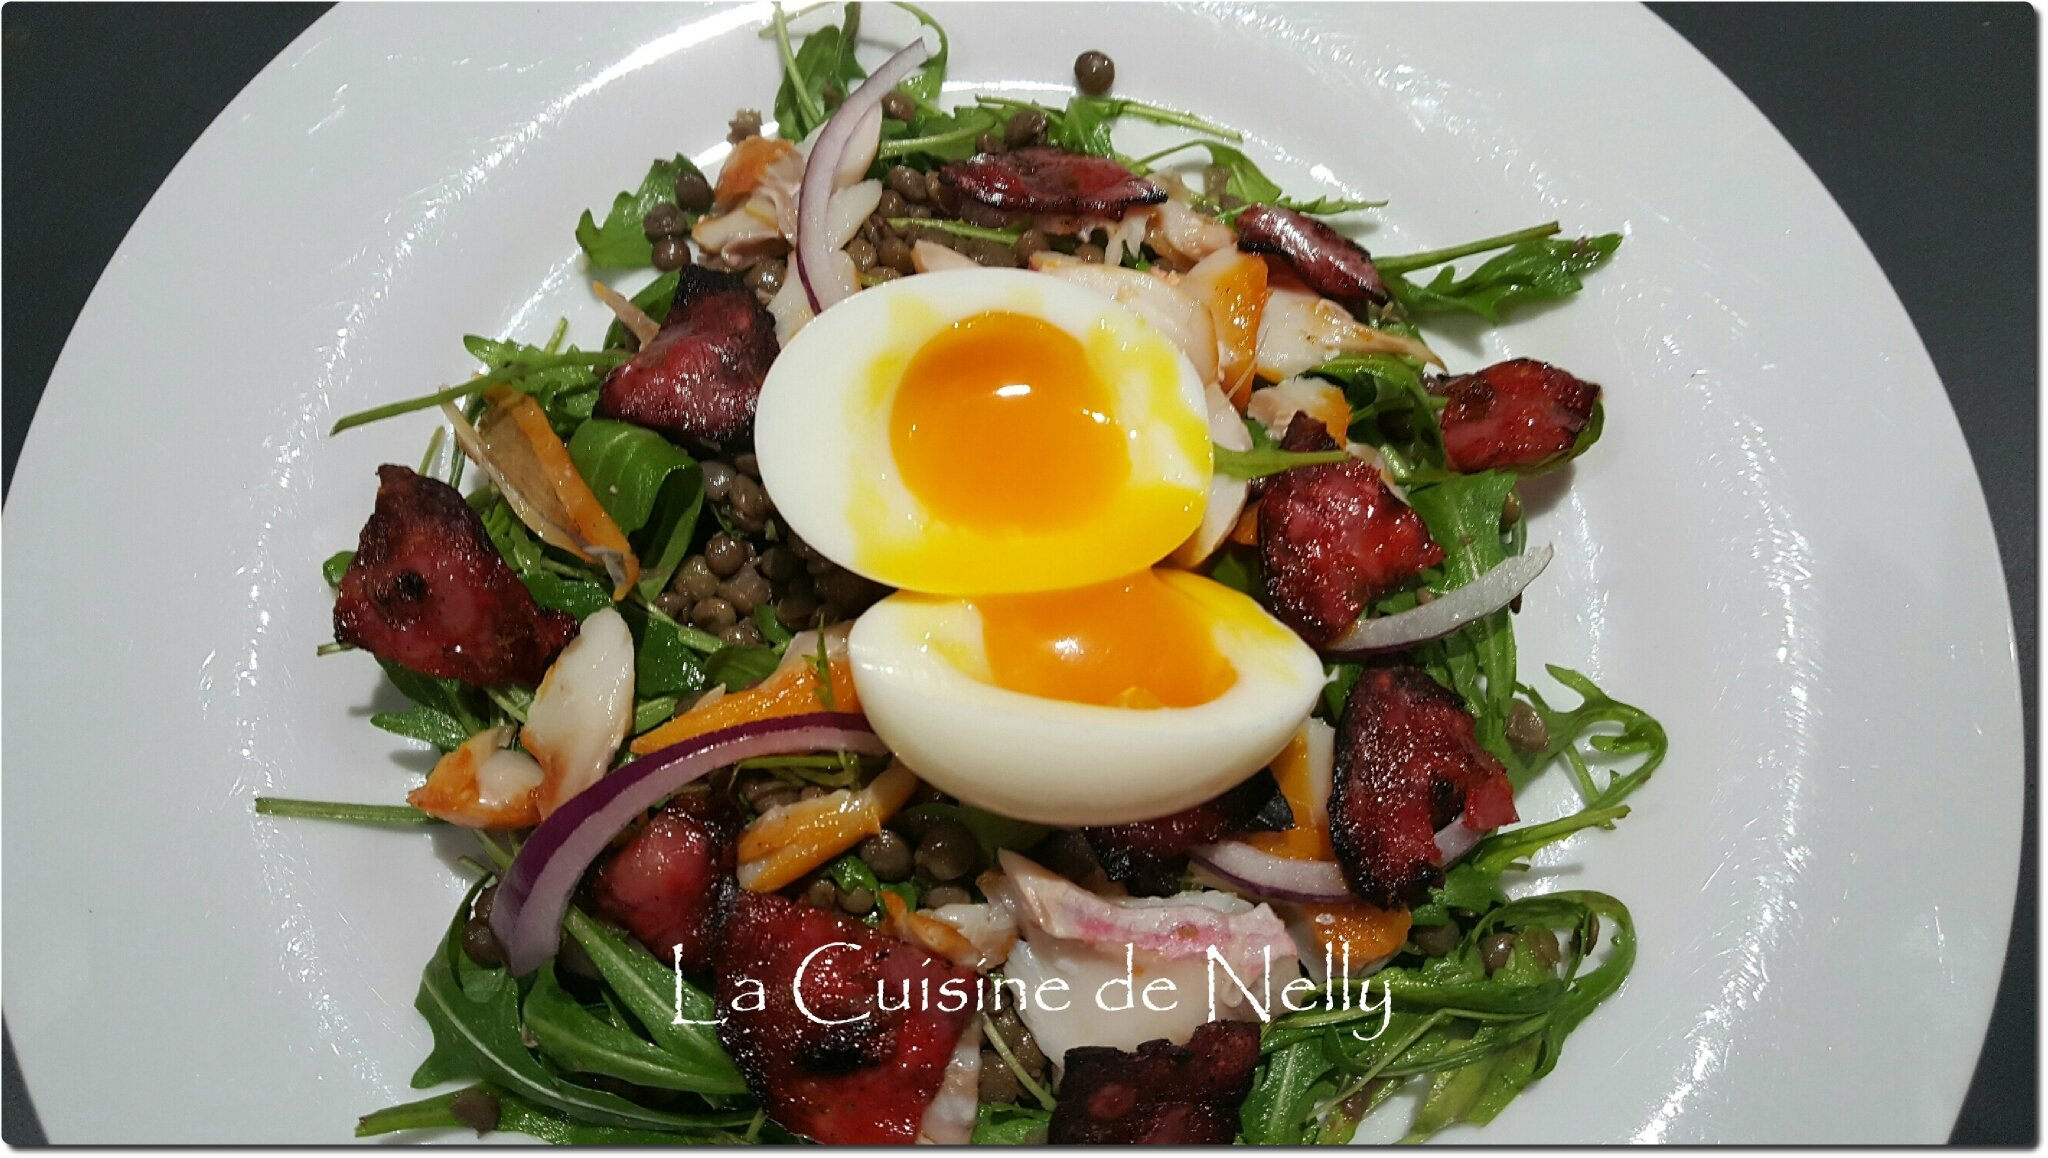 salade de lentilles roquette haddock oeuf mollet et chorizo croquant la cuisine de nelly. Black Bedroom Furniture Sets. Home Design Ideas